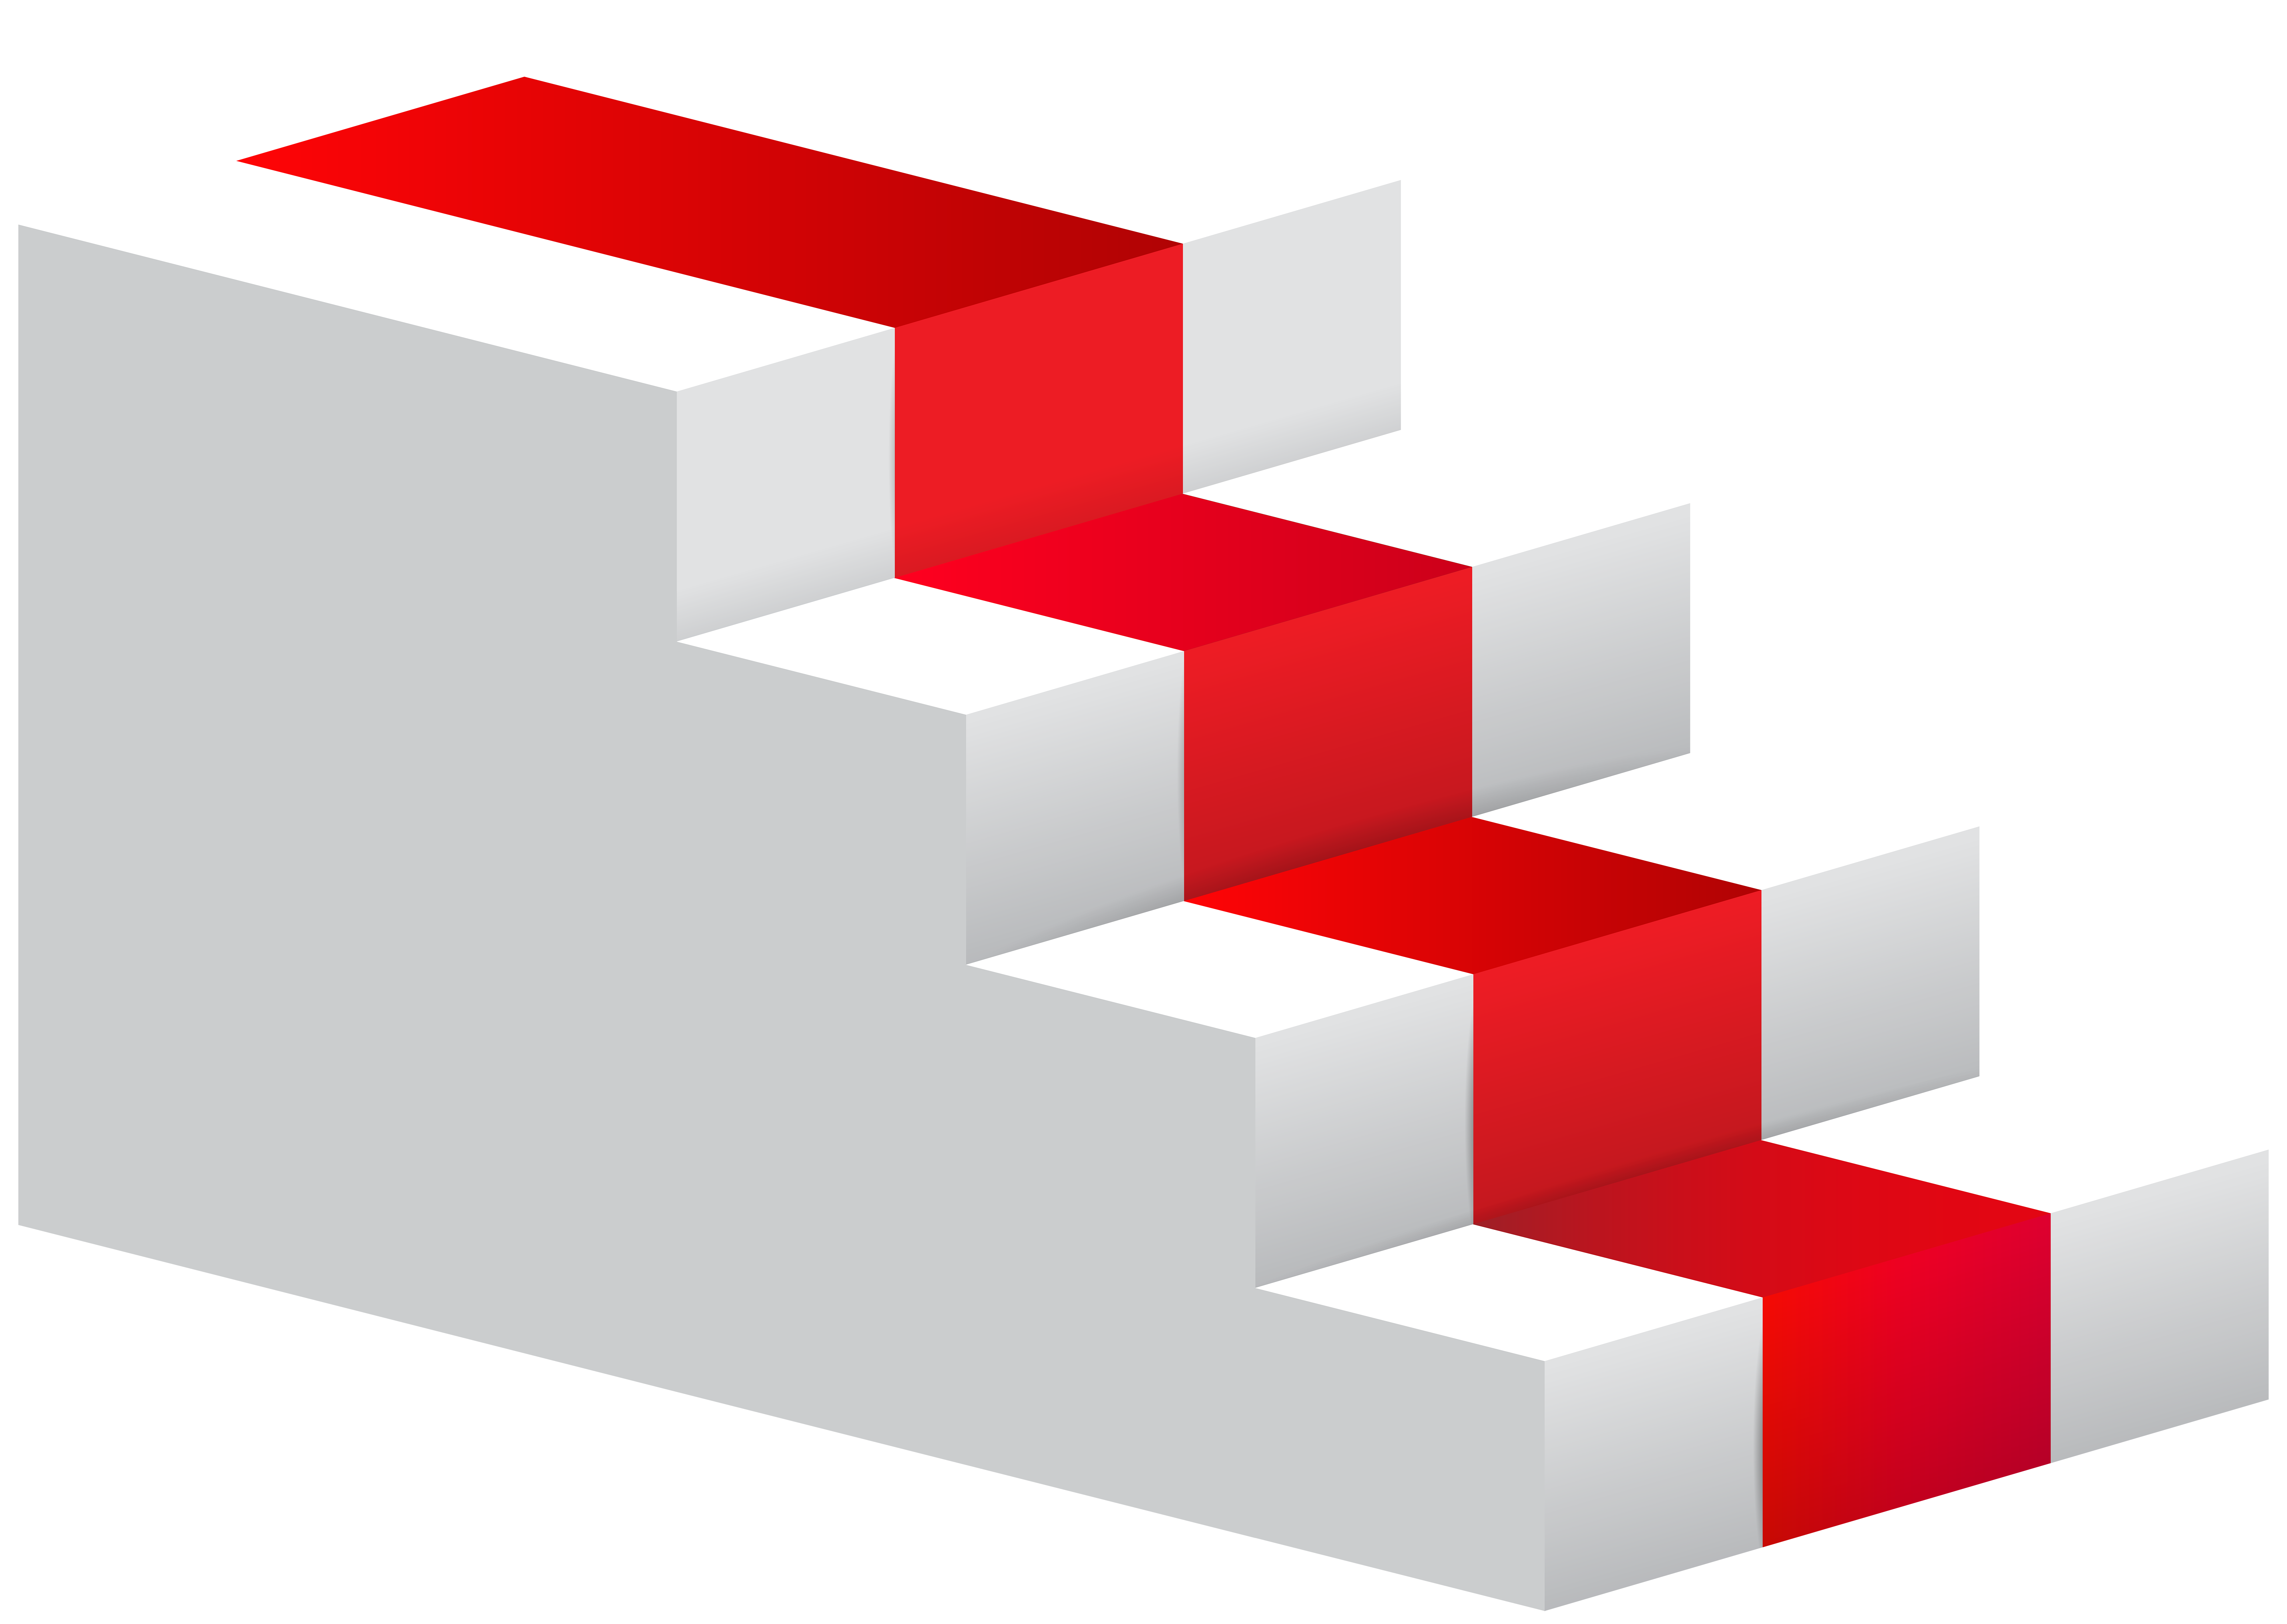 Stairs transparent line. Png clip art image